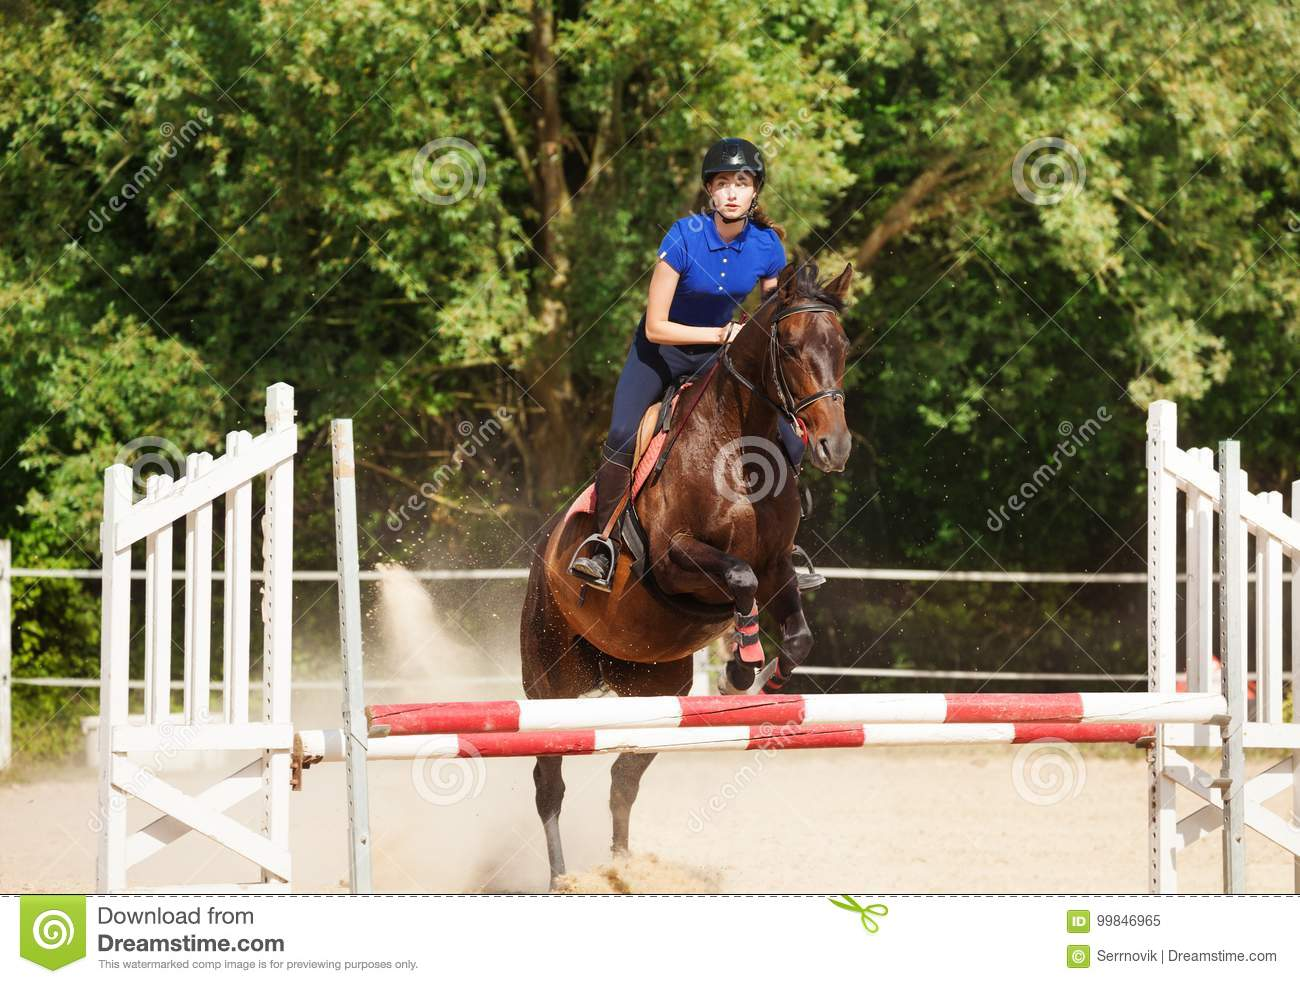 Jumping horse carrying horsewoman during training